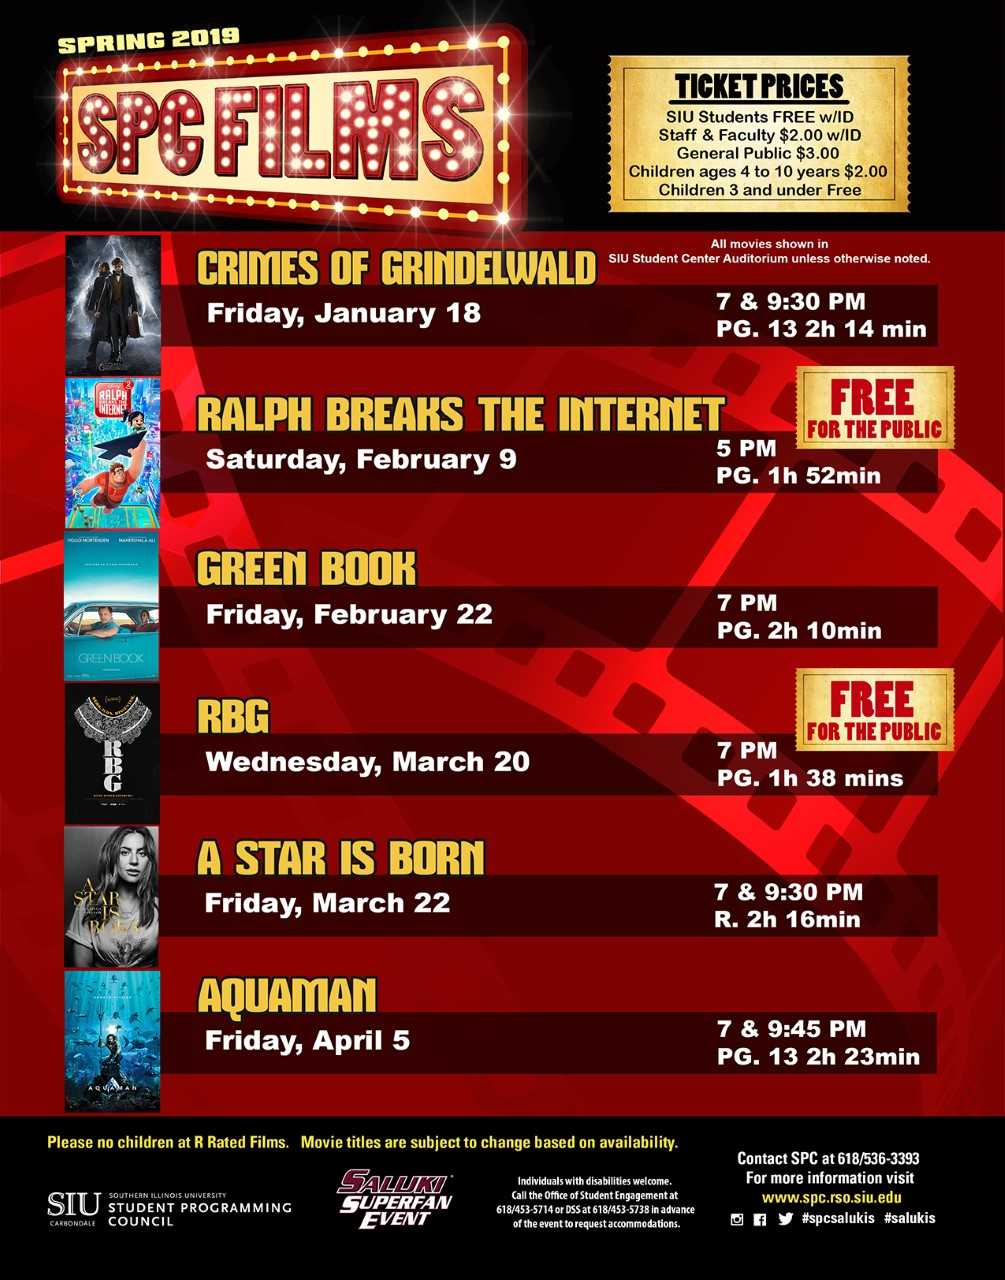 See today's new releases at SIU for free or very low prices